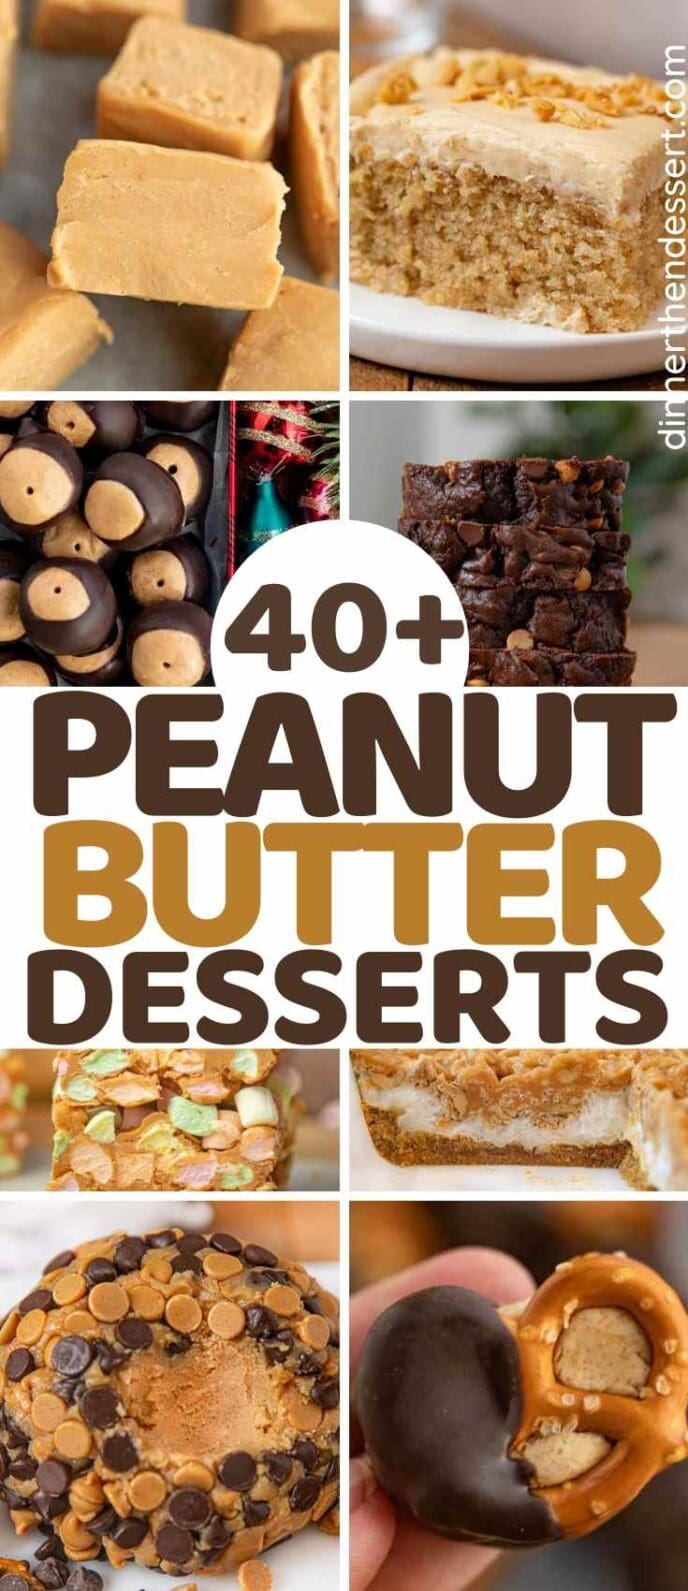 Peanut Butter Desserts collage of photos with title across the middle